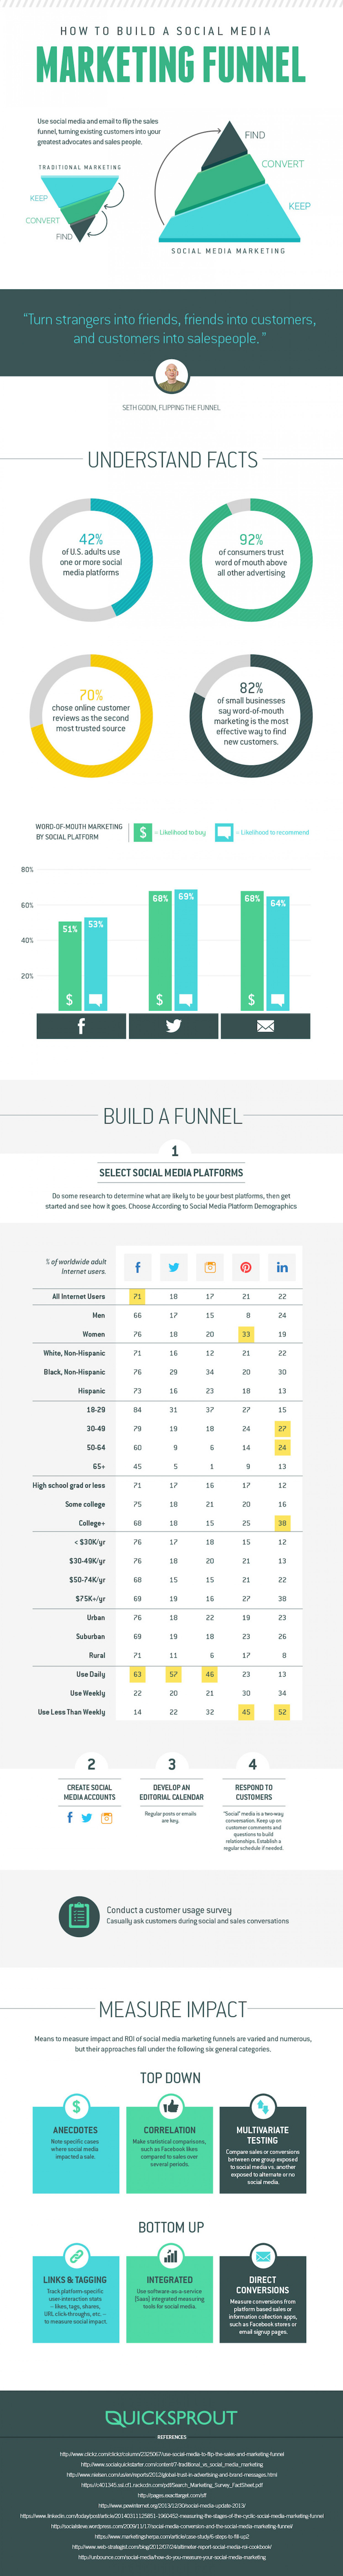 How to Build a Social Media Marketing Funnel Infographic